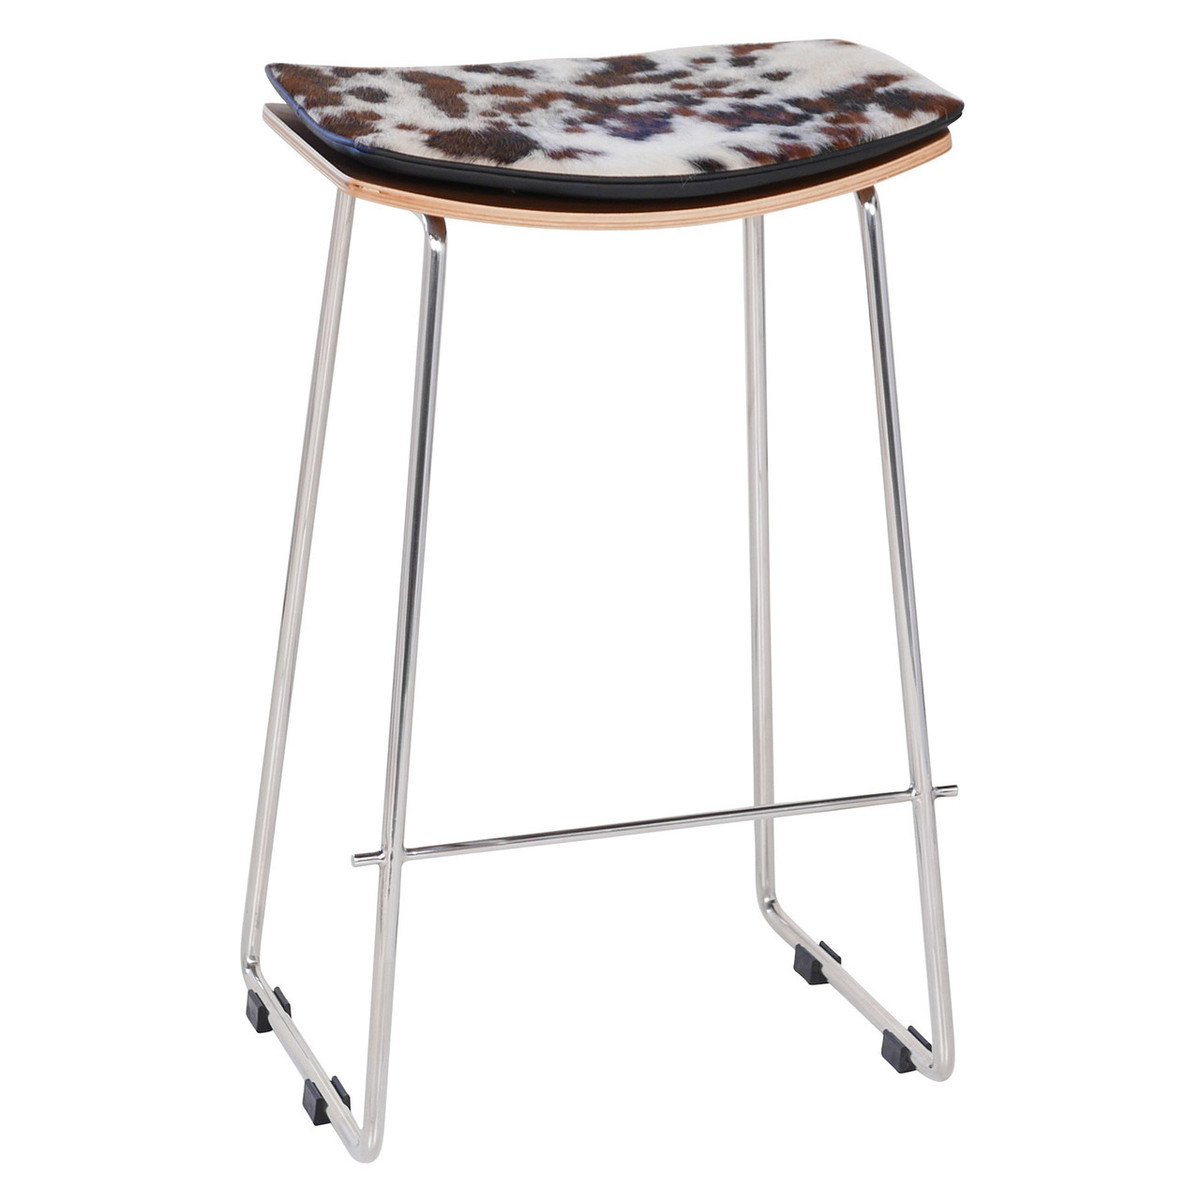 Potter Y Design Leather Cowhide Stool Replica